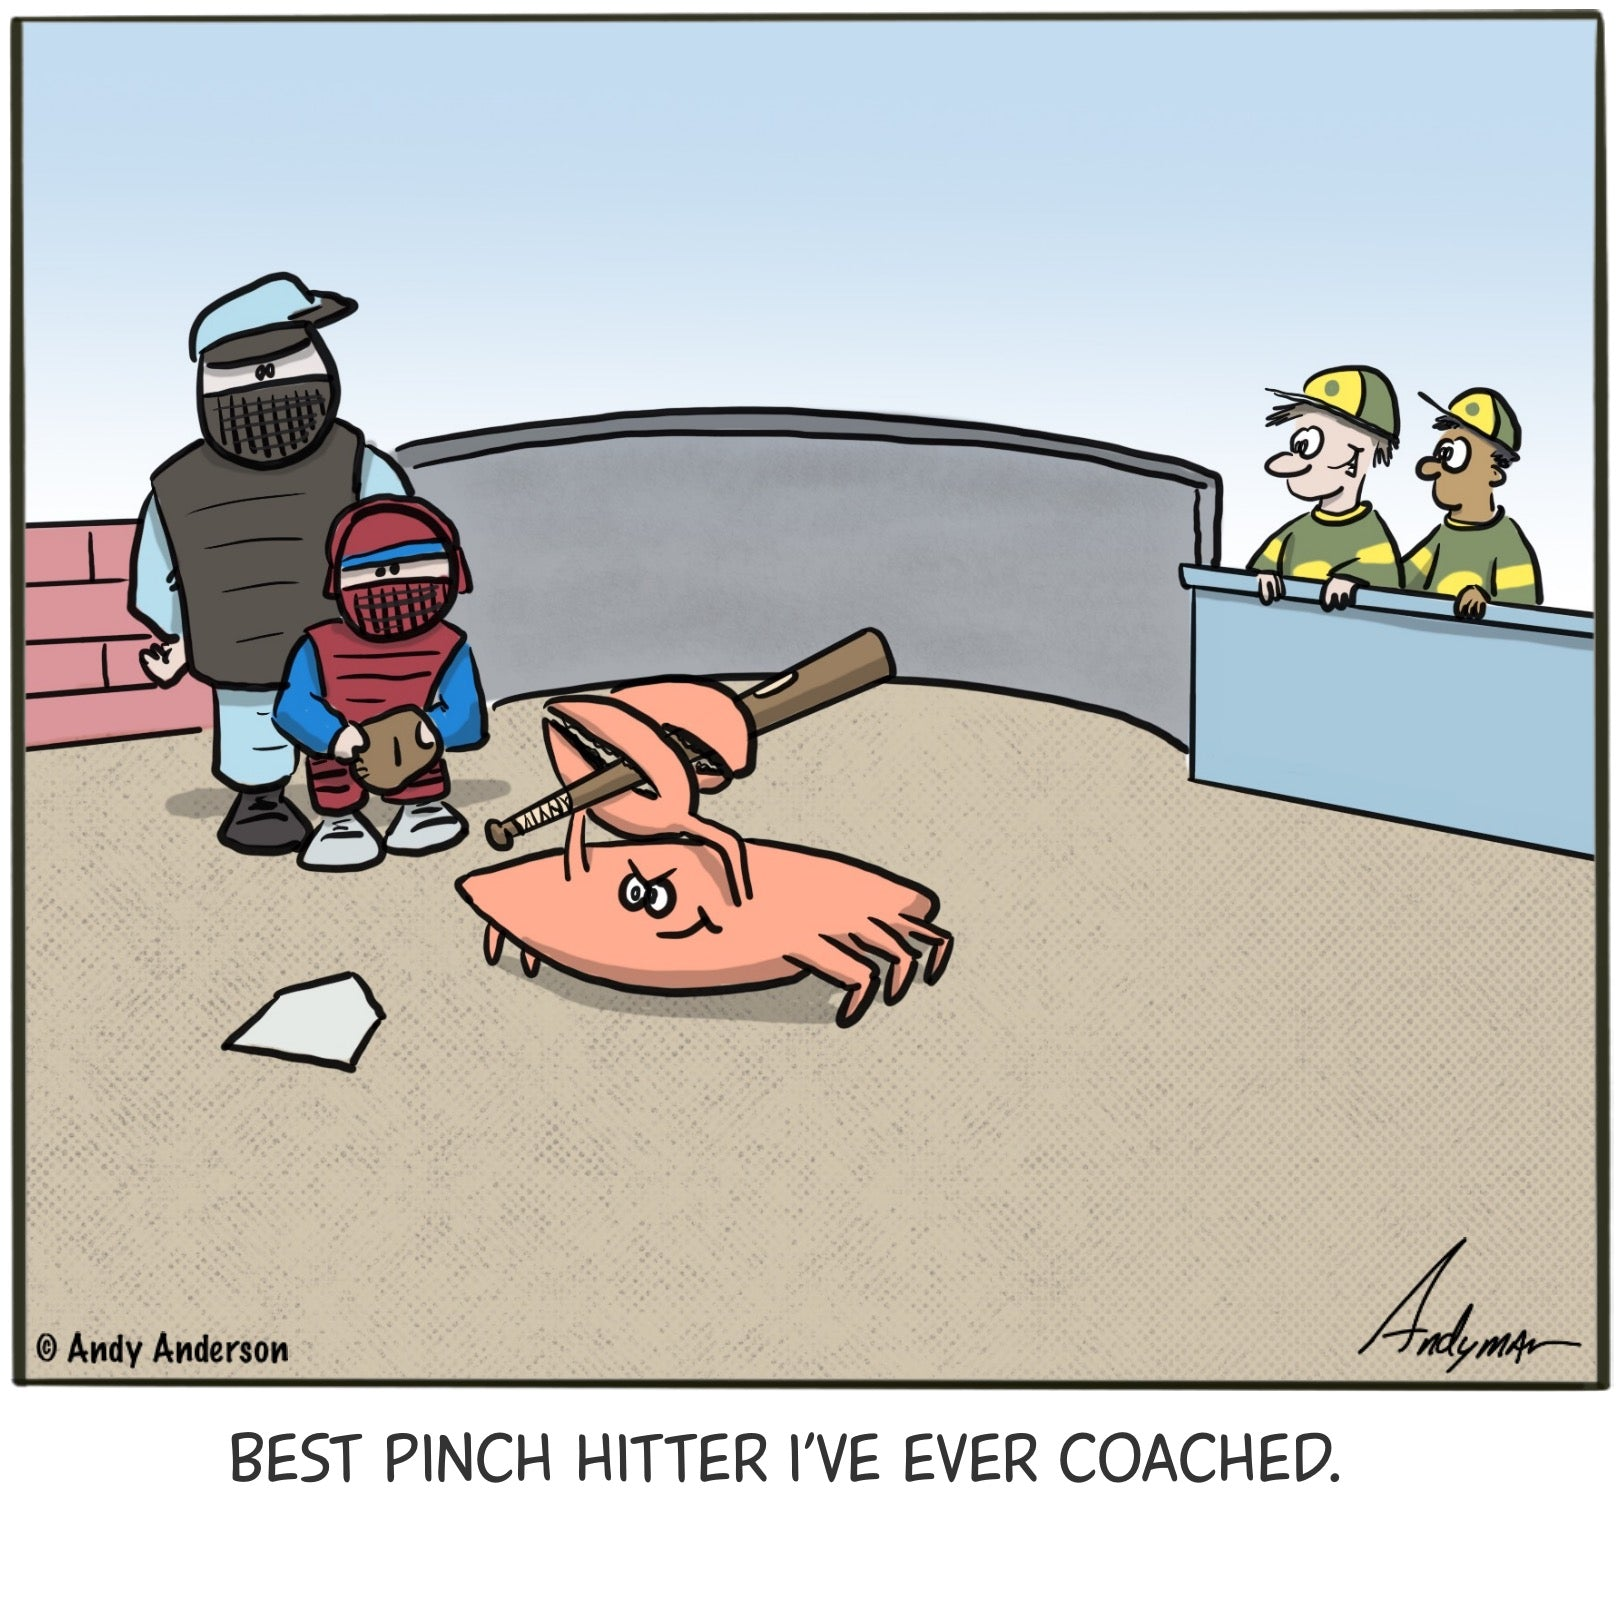 Cartoon about having a crab as a pinch hitter by Andy Anderson